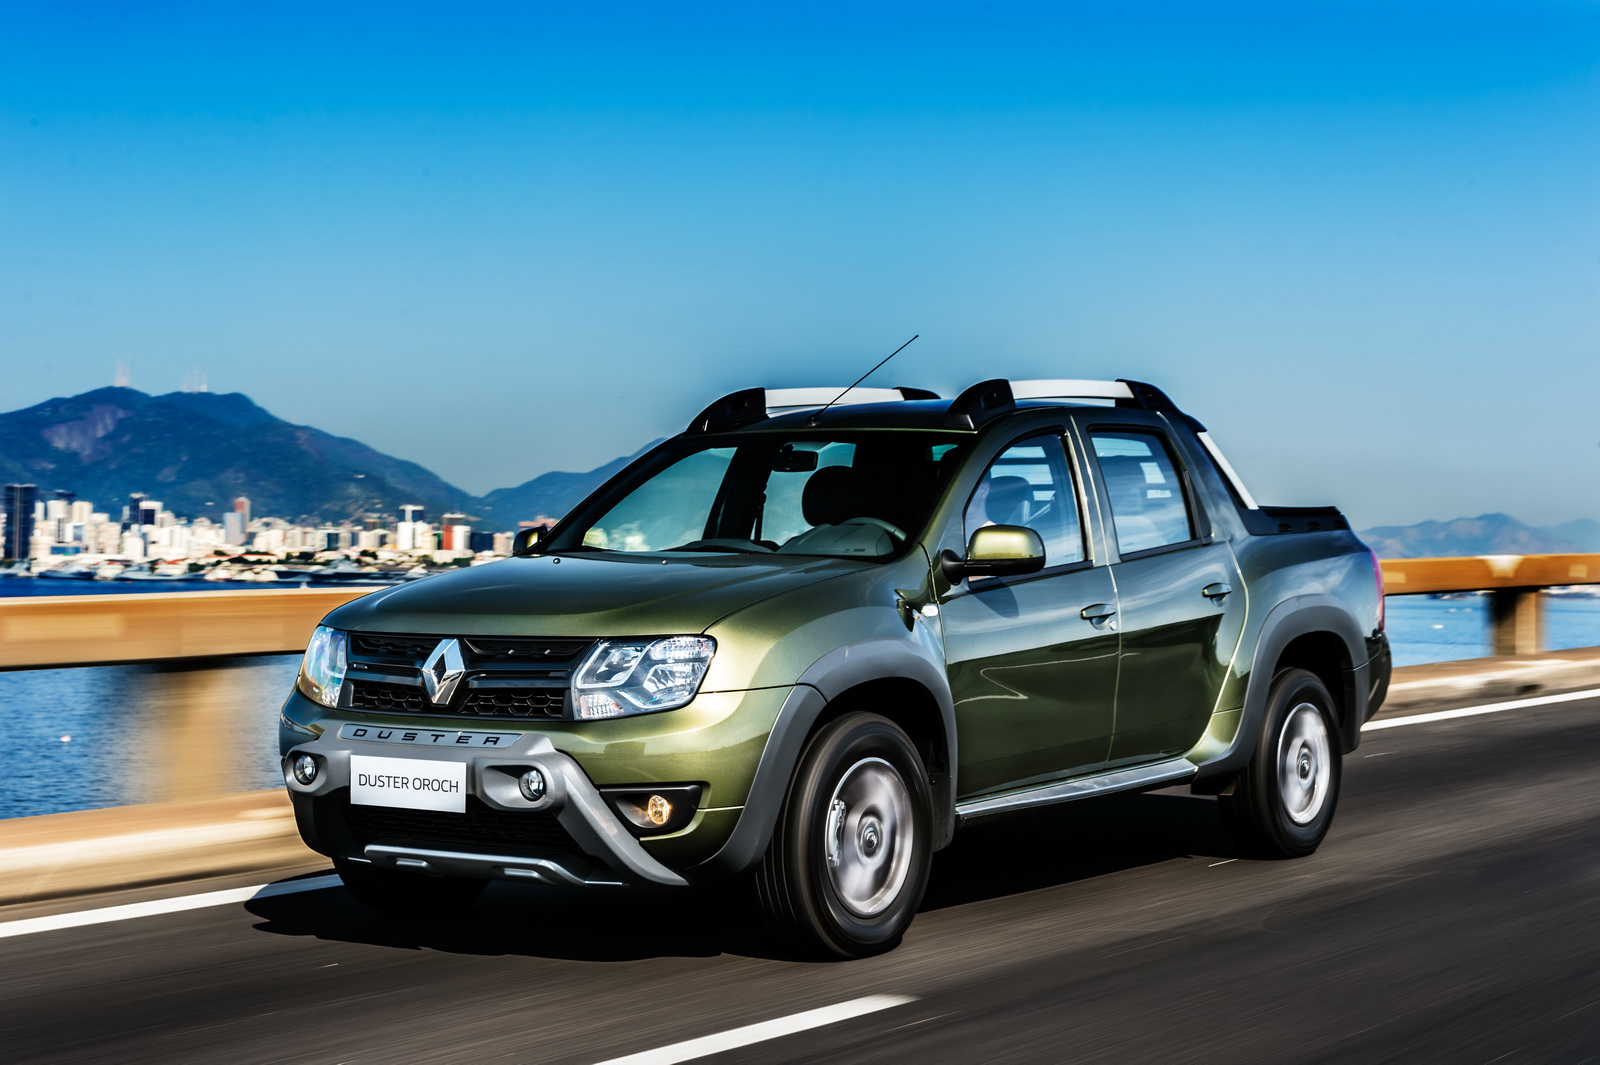 renault launches duster based pick up in brazil autocar india. Black Bedroom Furniture Sets. Home Design Ideas